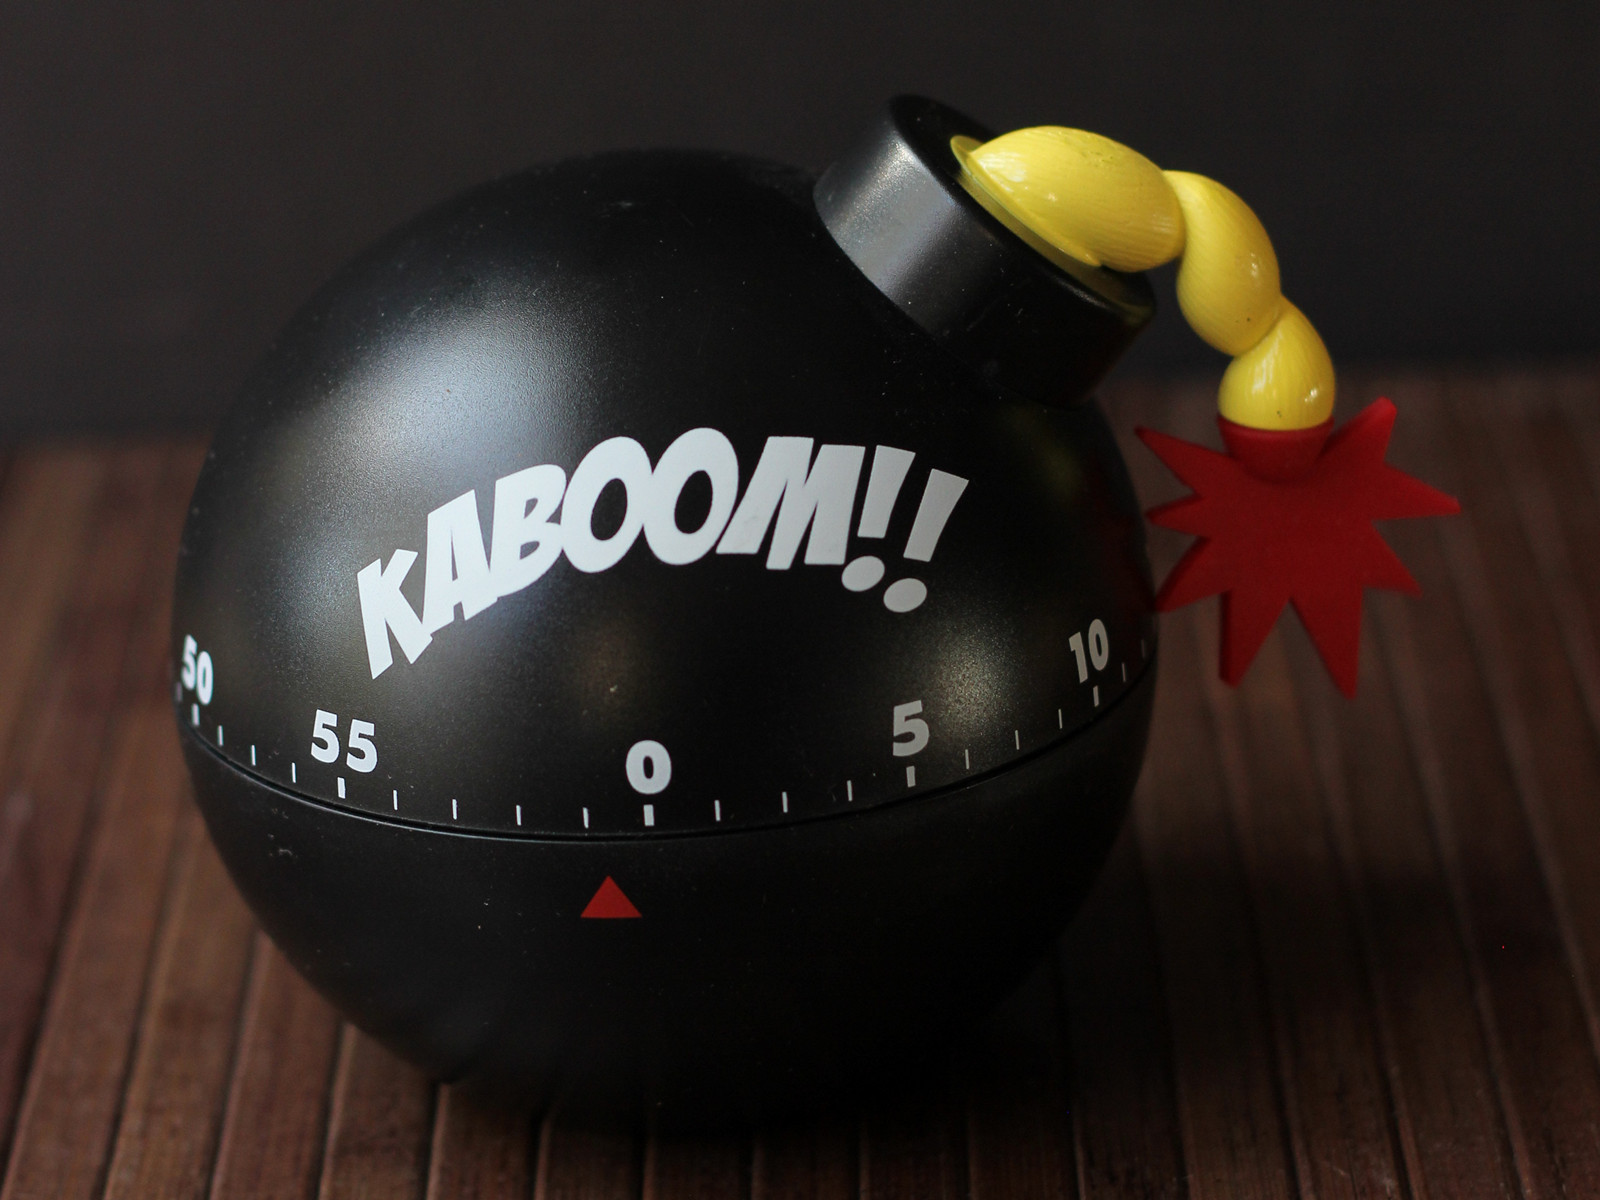 Cookistrys kitchen gadget and food reviews gift guide for bakers a fun and funny kitchen timer that would be a good stocking stuffer for the cook with a sense of humor the timer doesnt actually go boom when time is up publicscrutiny Choice Image